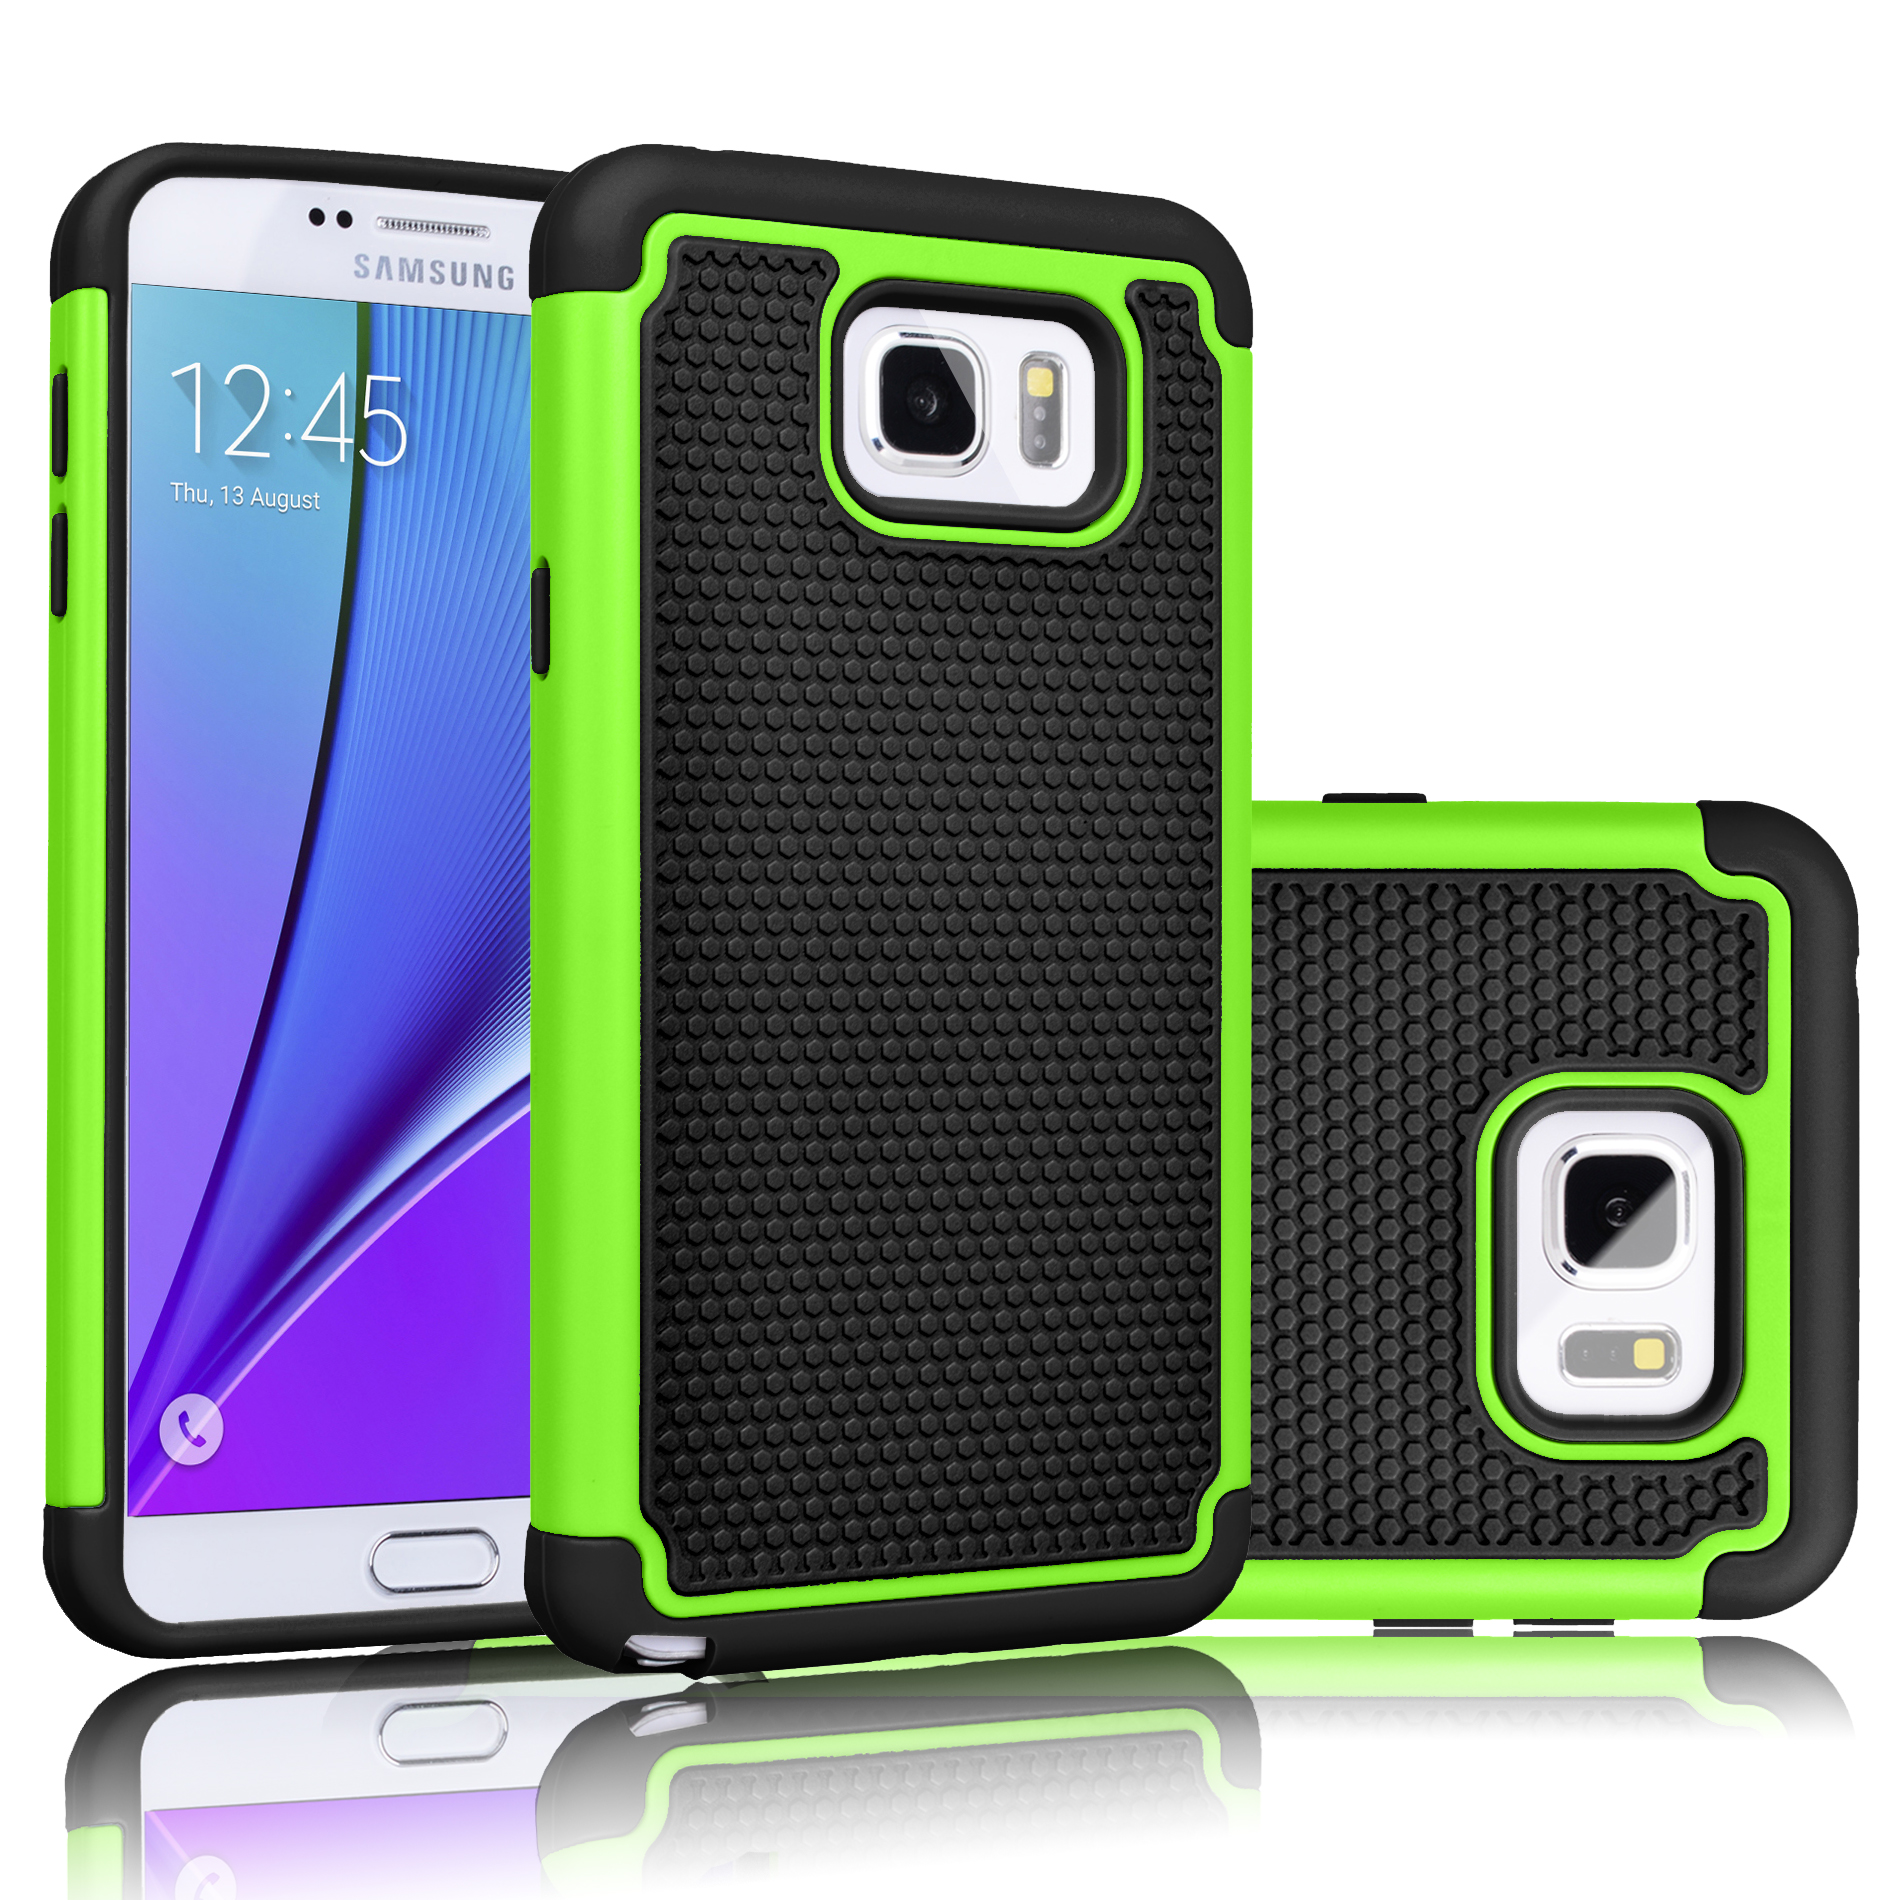 Galaxy Note 5 Case, Case Cover, Tekcoo [Tmajor] [Green Cases